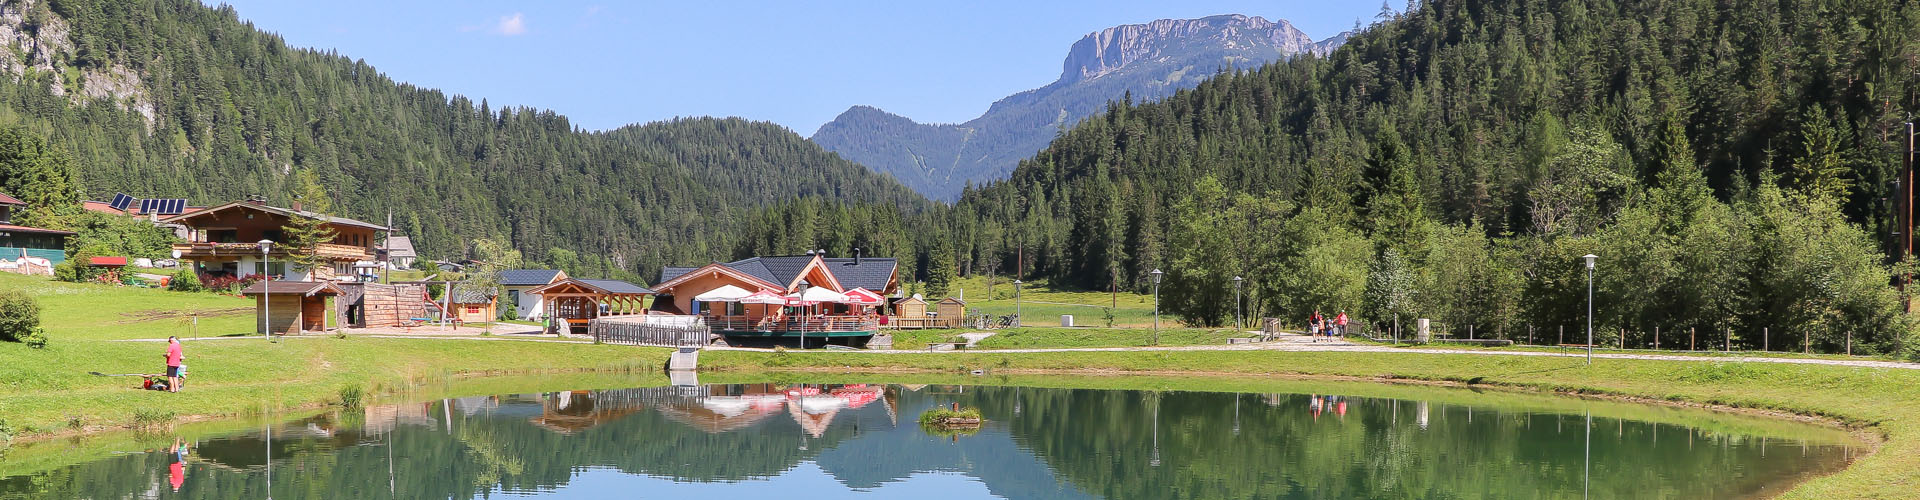 Forellenranch Pillersee 1